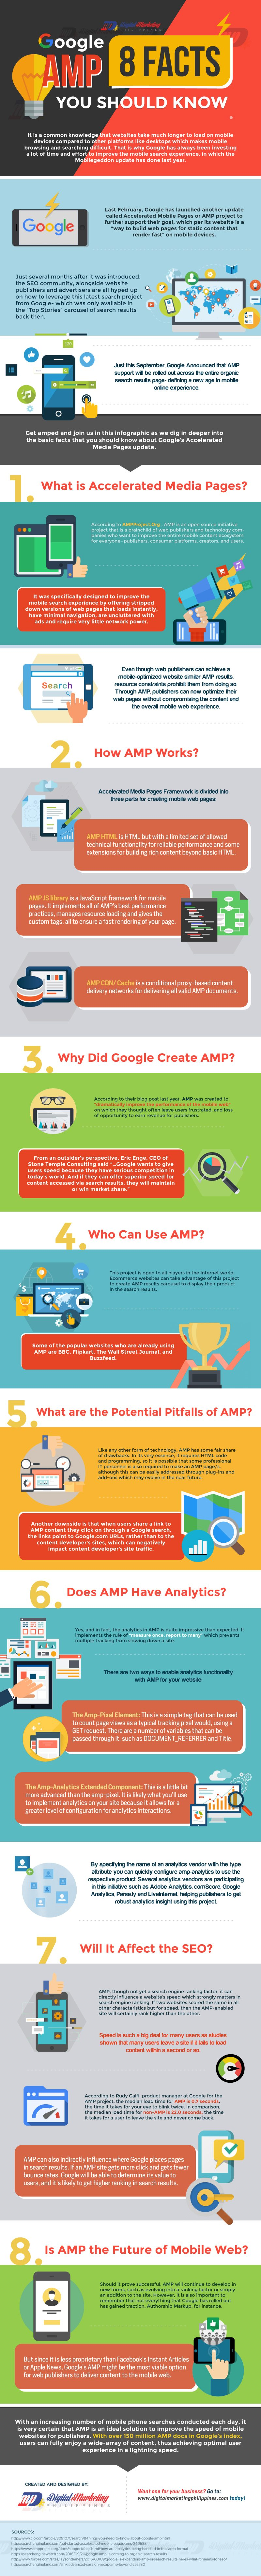 Top tips for Google AMP – Accelerated Mobile Pages